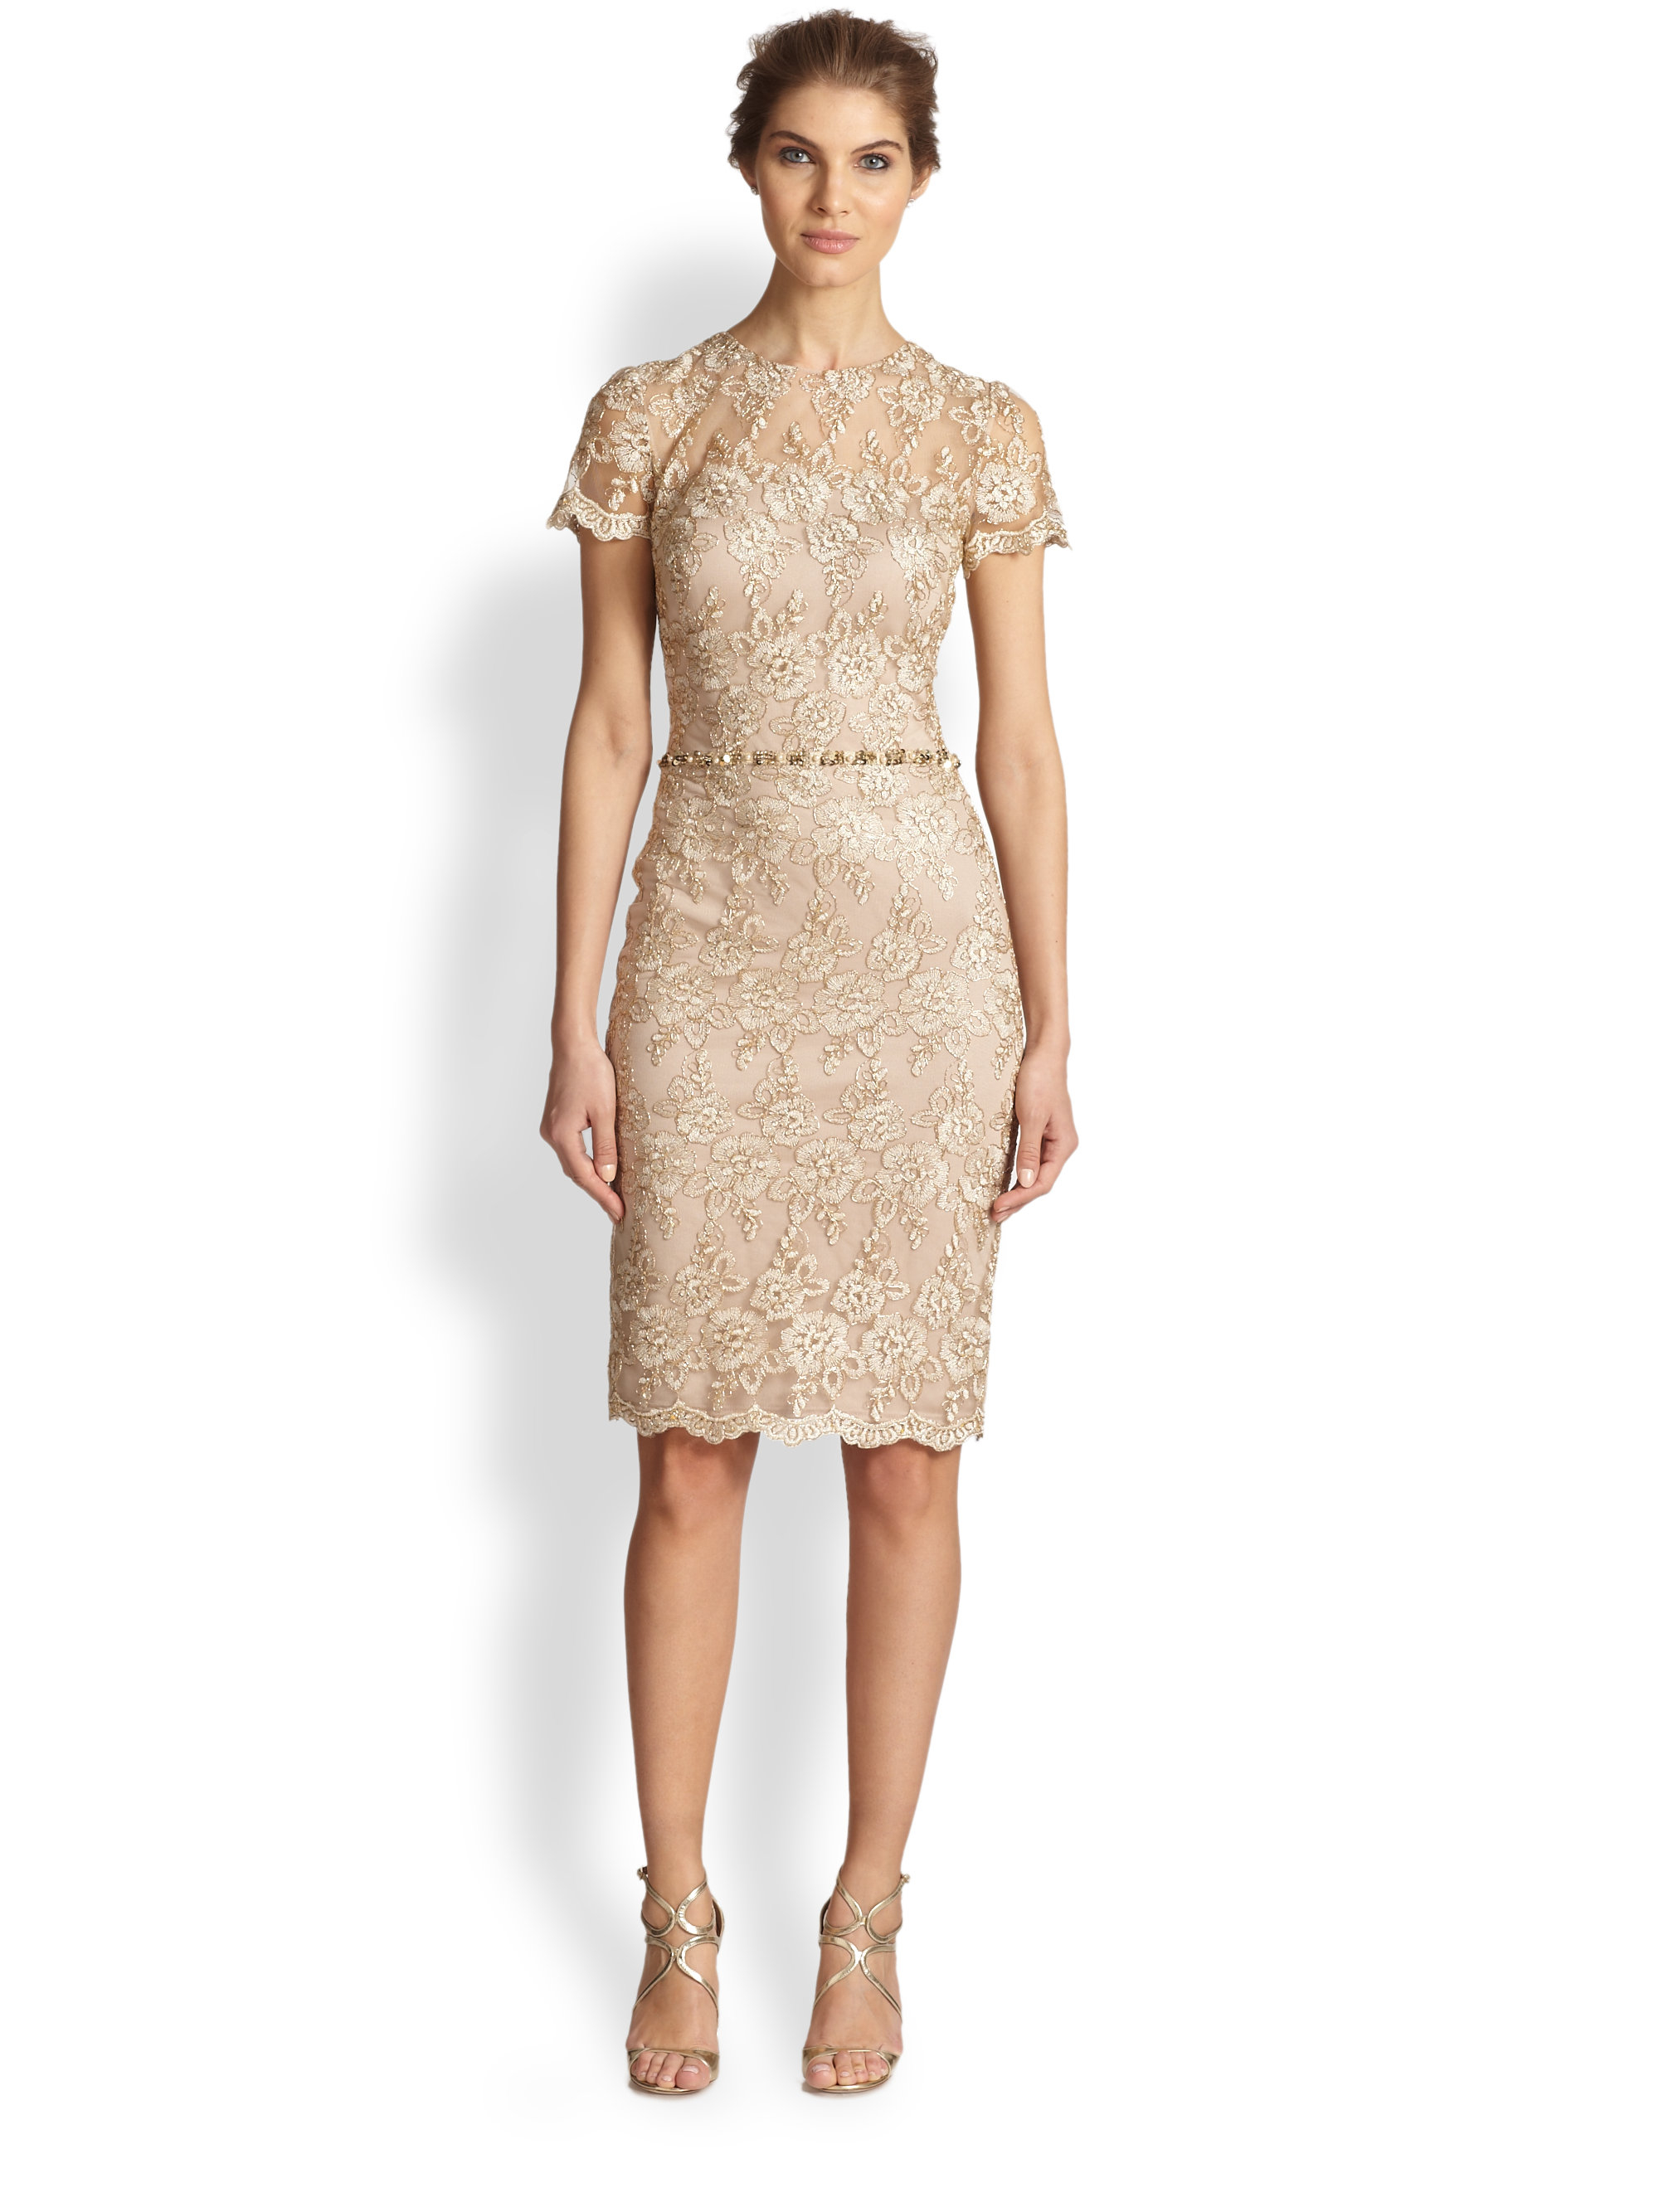 David meister Shortsleeve Lace Dress in Natural | Lyst